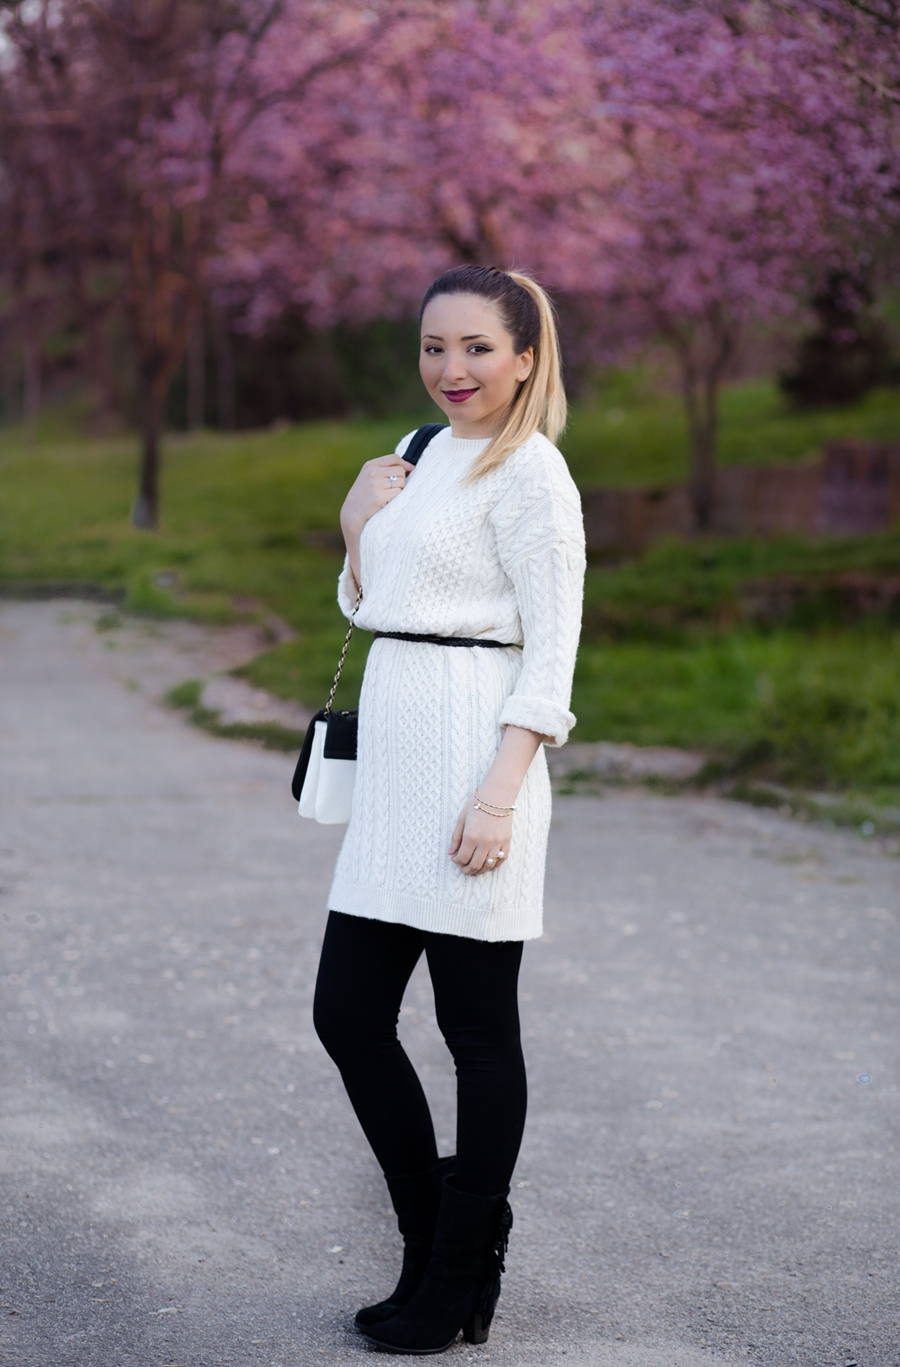 Street style - knitwear white dress, black and white outfit, spring look, fashion blogger Andreea Ristea